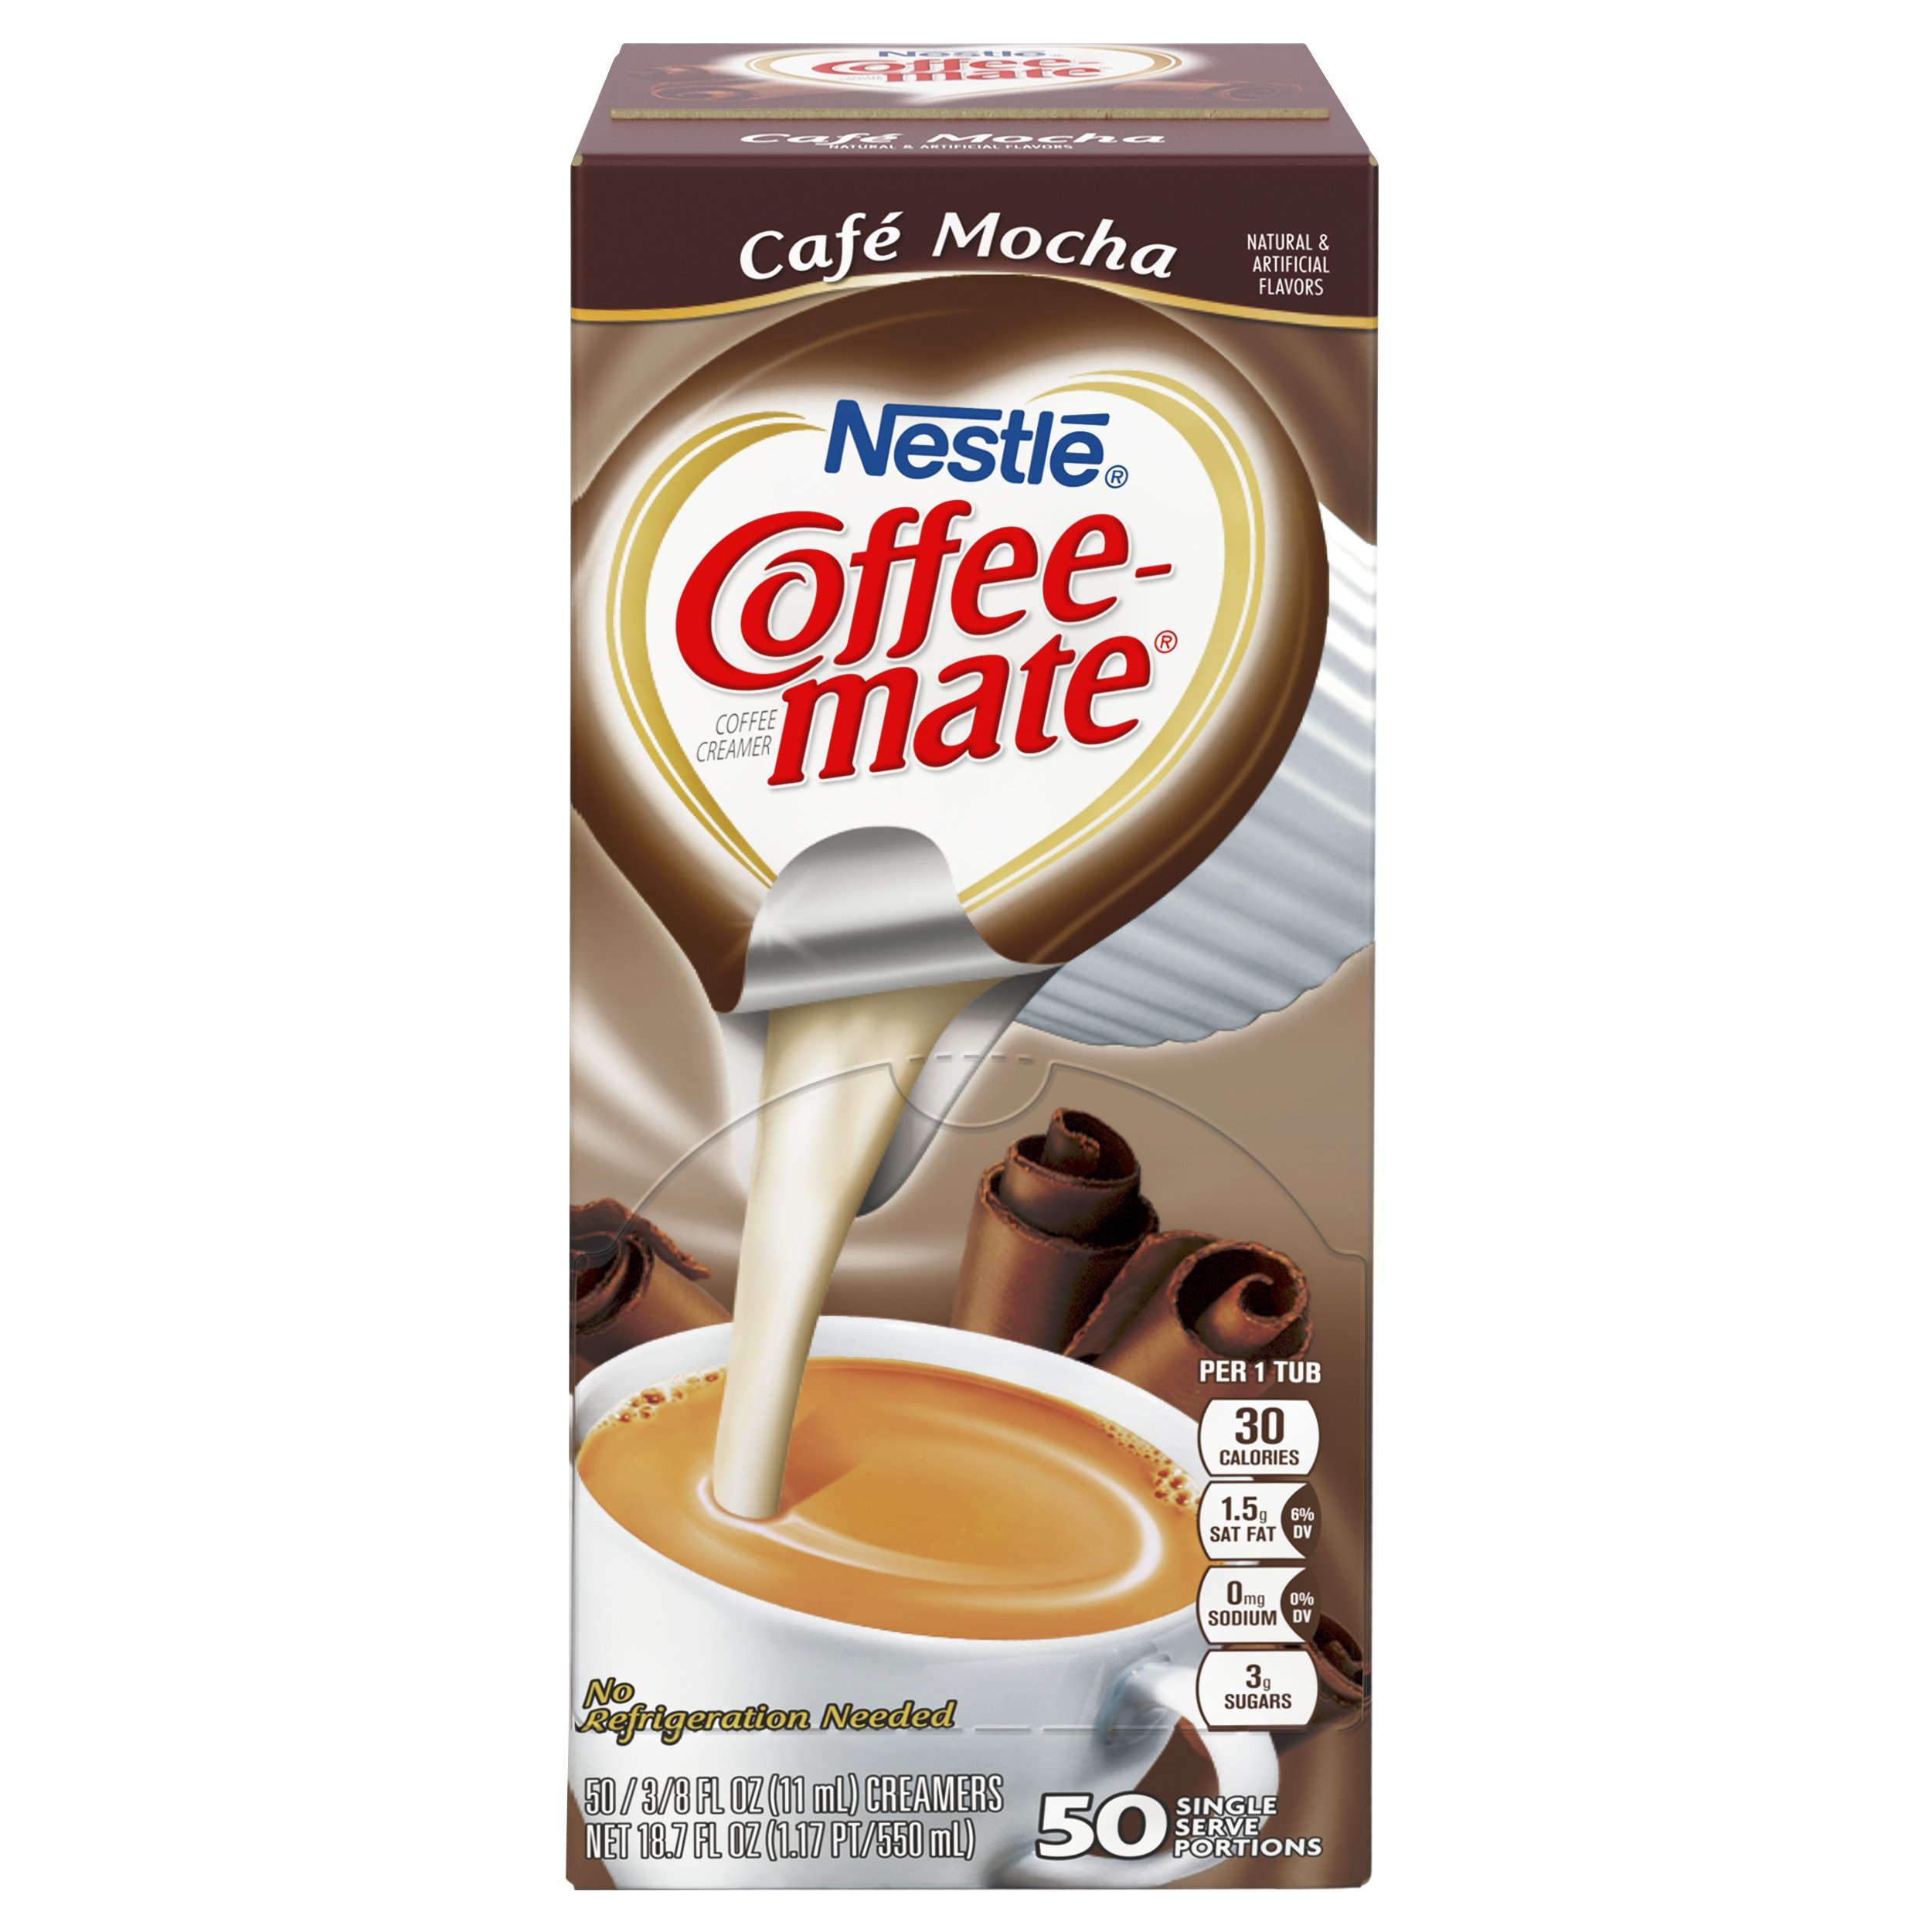 NESTLE COFFEE-MATE Coffee Creamer, Cafe Mocha, liquid creamer singles, 50 Count (Pack of 4) by Nestle Coffee Mate (Image #2)